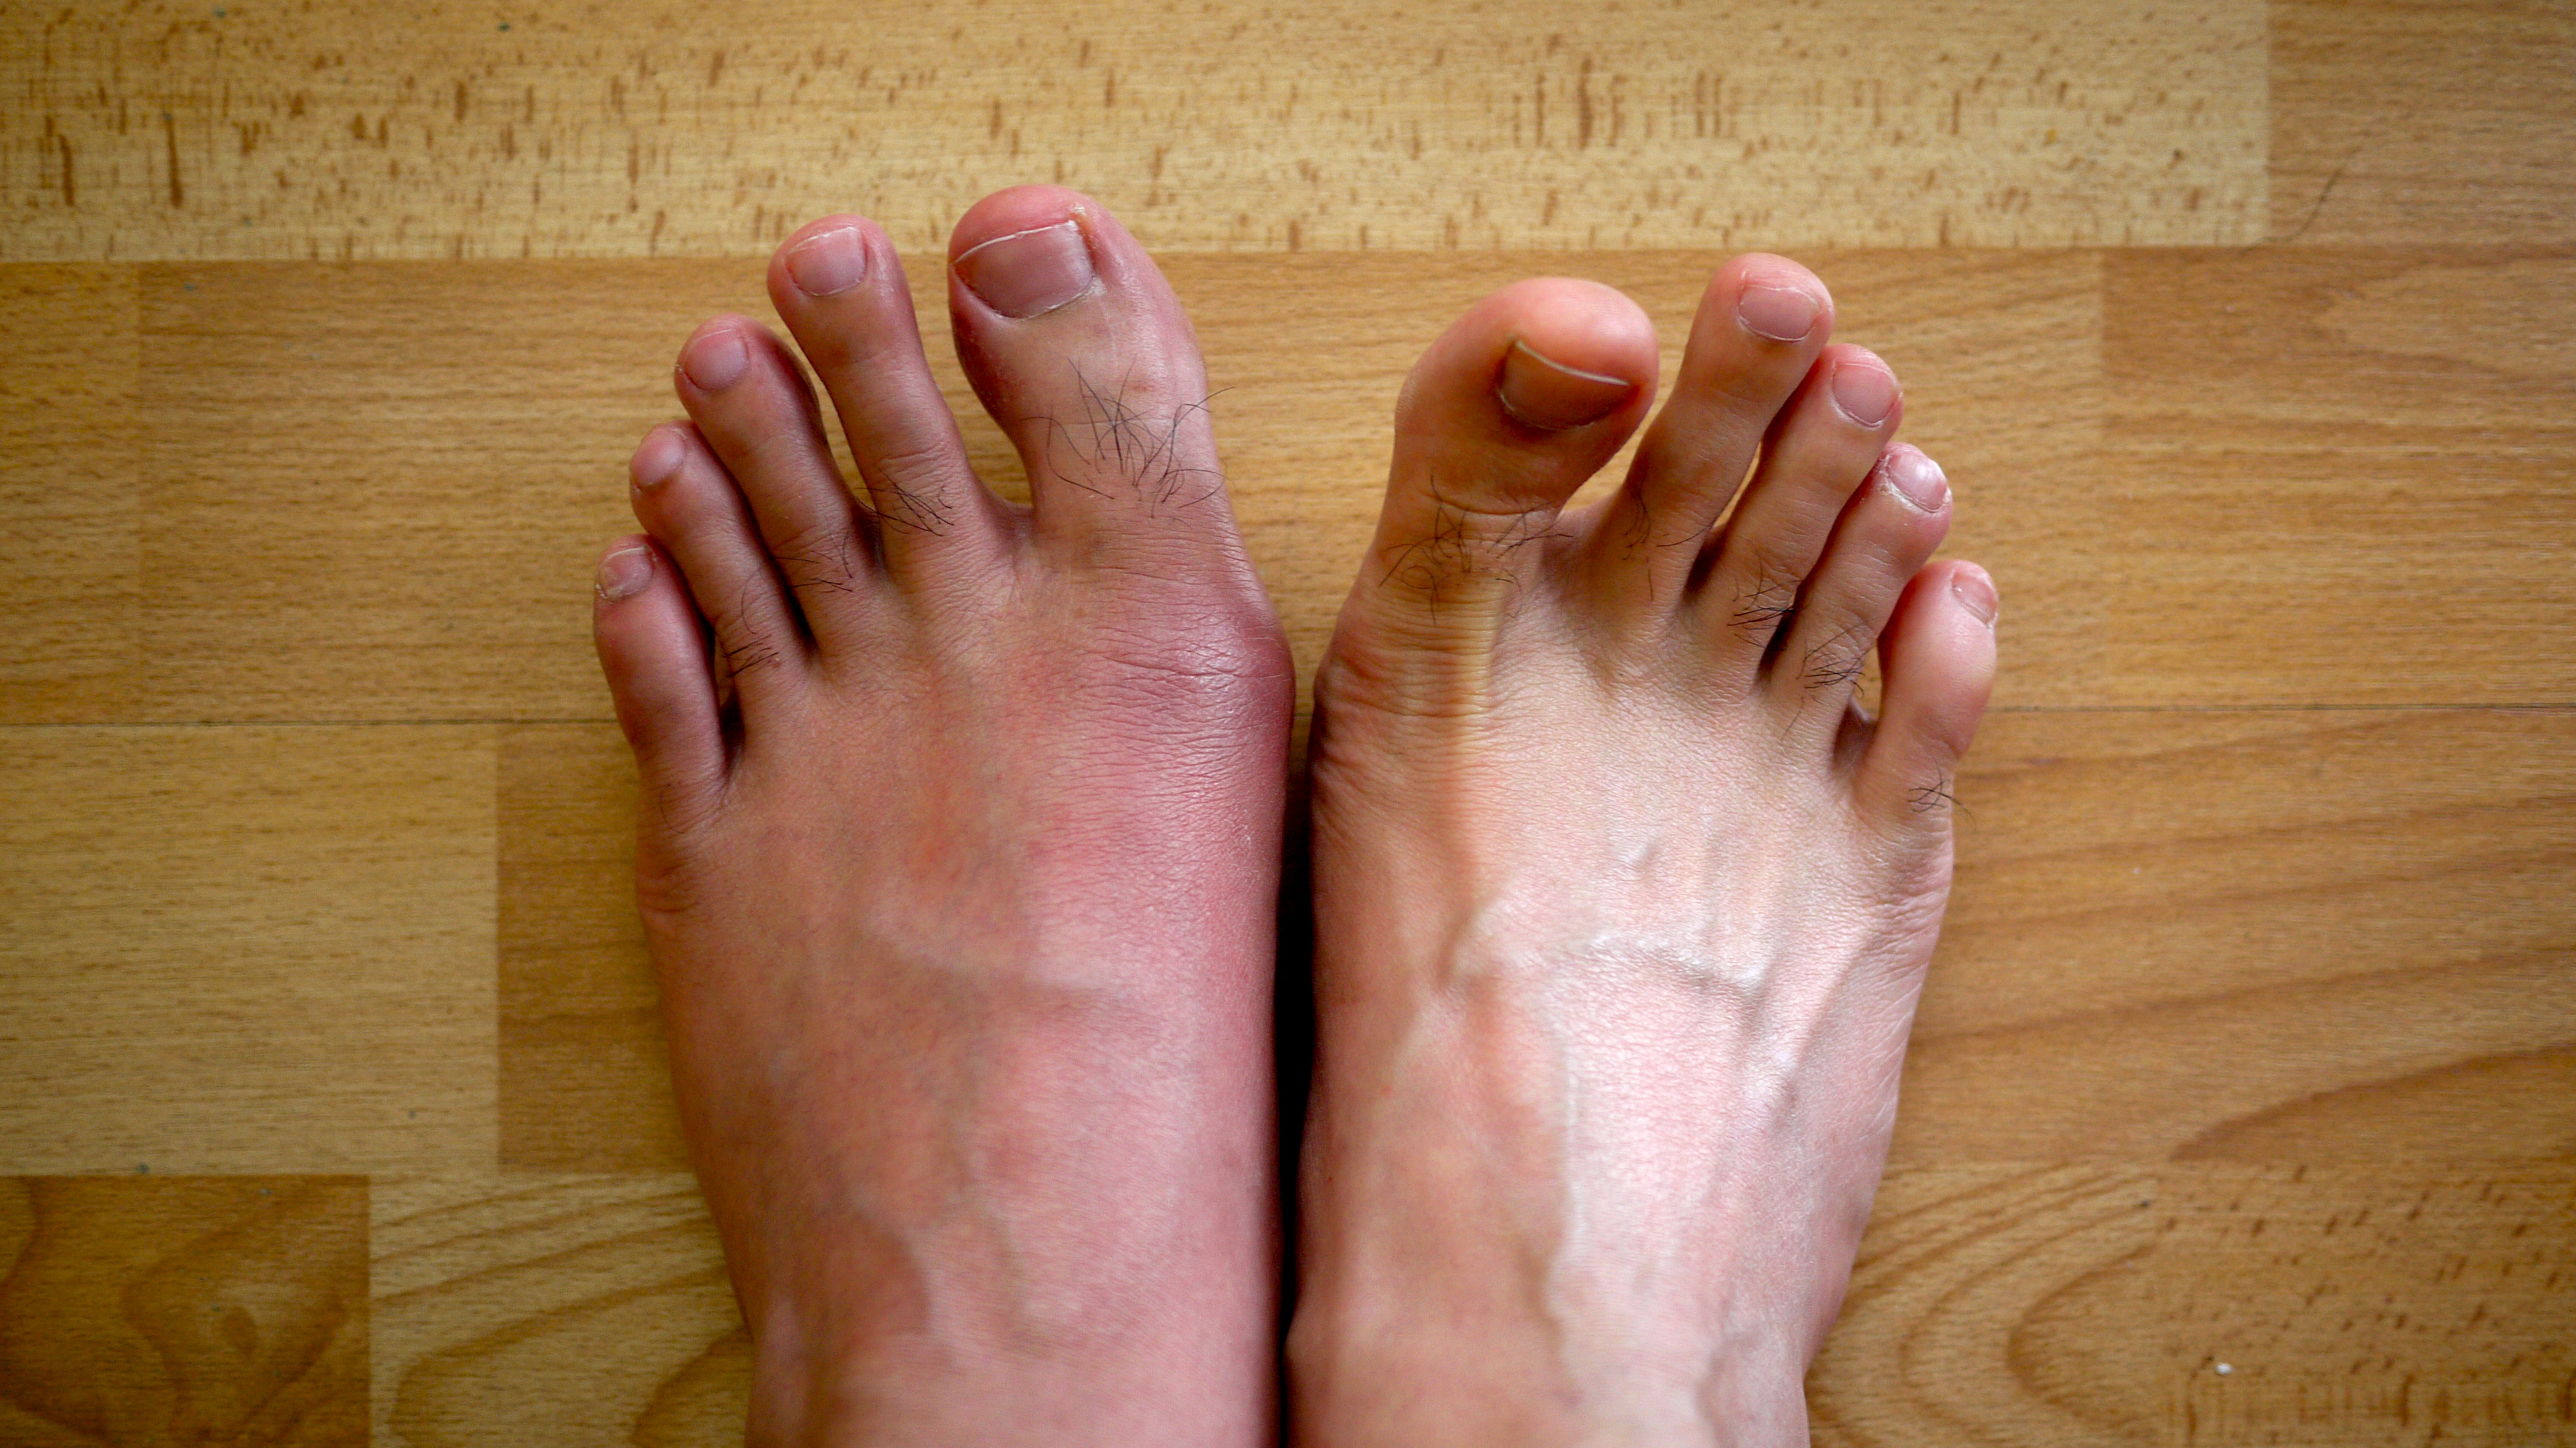 gout causes and treatment gout ankle swelling pictures foods to avoid when you have gouty arthritis